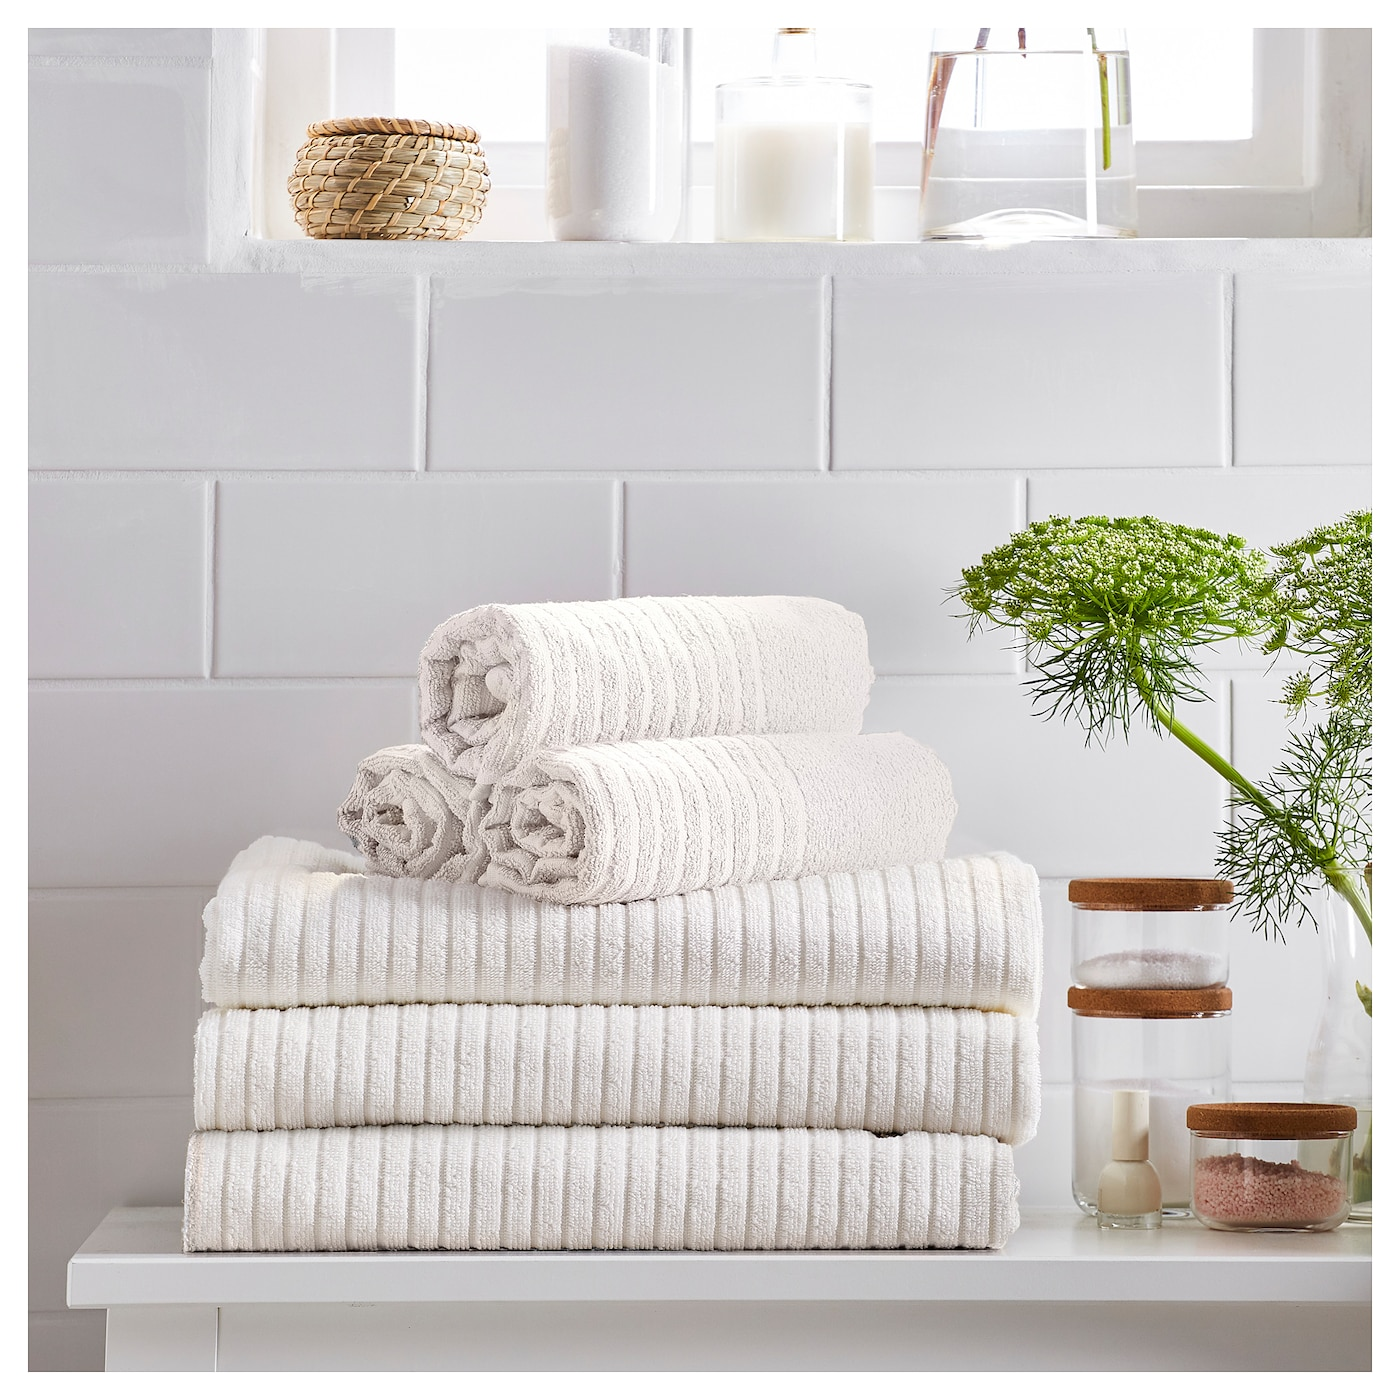 IKEA VÅGSJÖN washcloth A terry towel that is soft and absorbent (weight 390 g/m²).